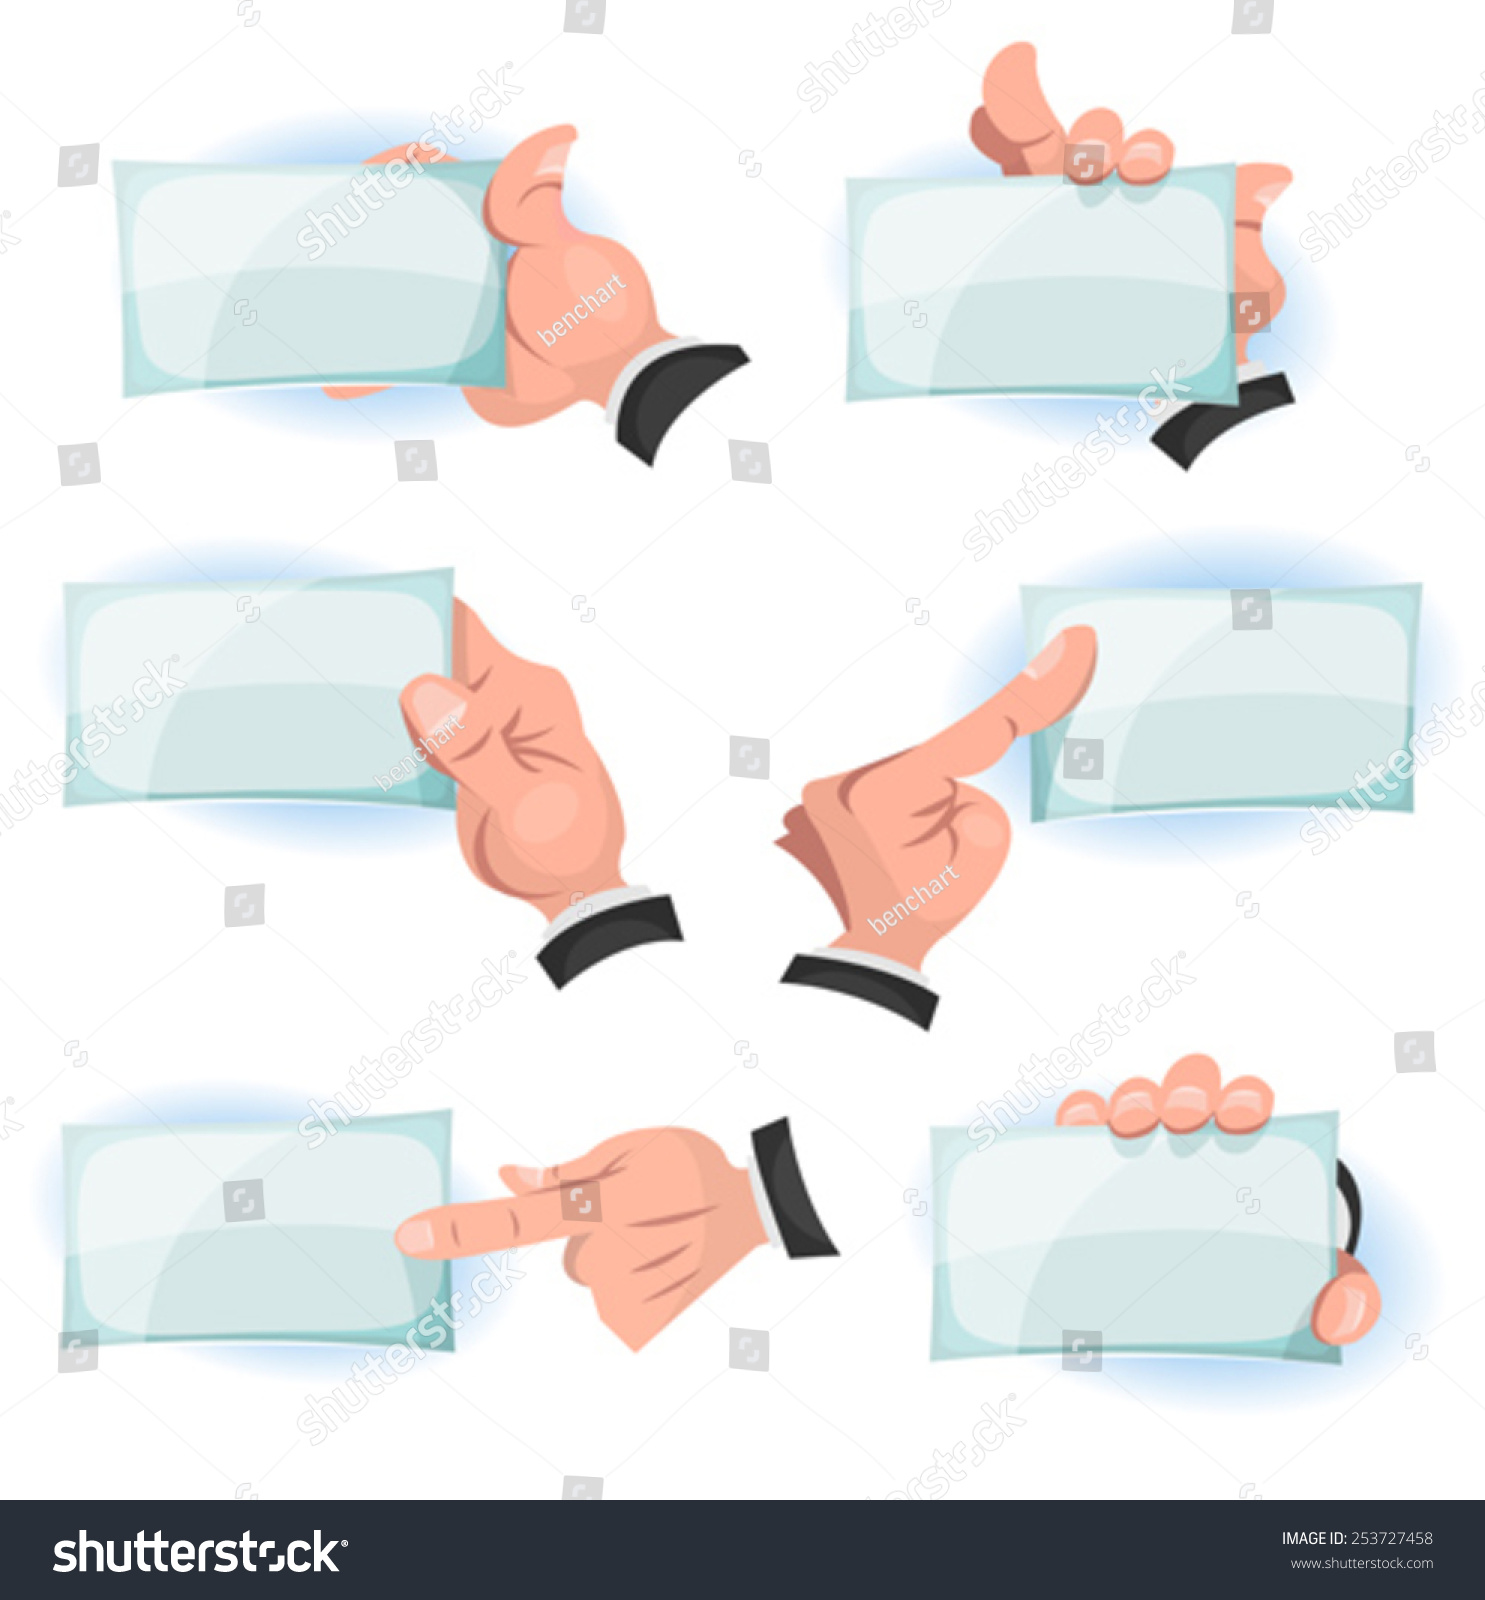 Comic hands holding business cards illustration stock vector comic hands holding business cards illustration of a set of funny cartoon hands and fingers magicingreecefo Choice Image